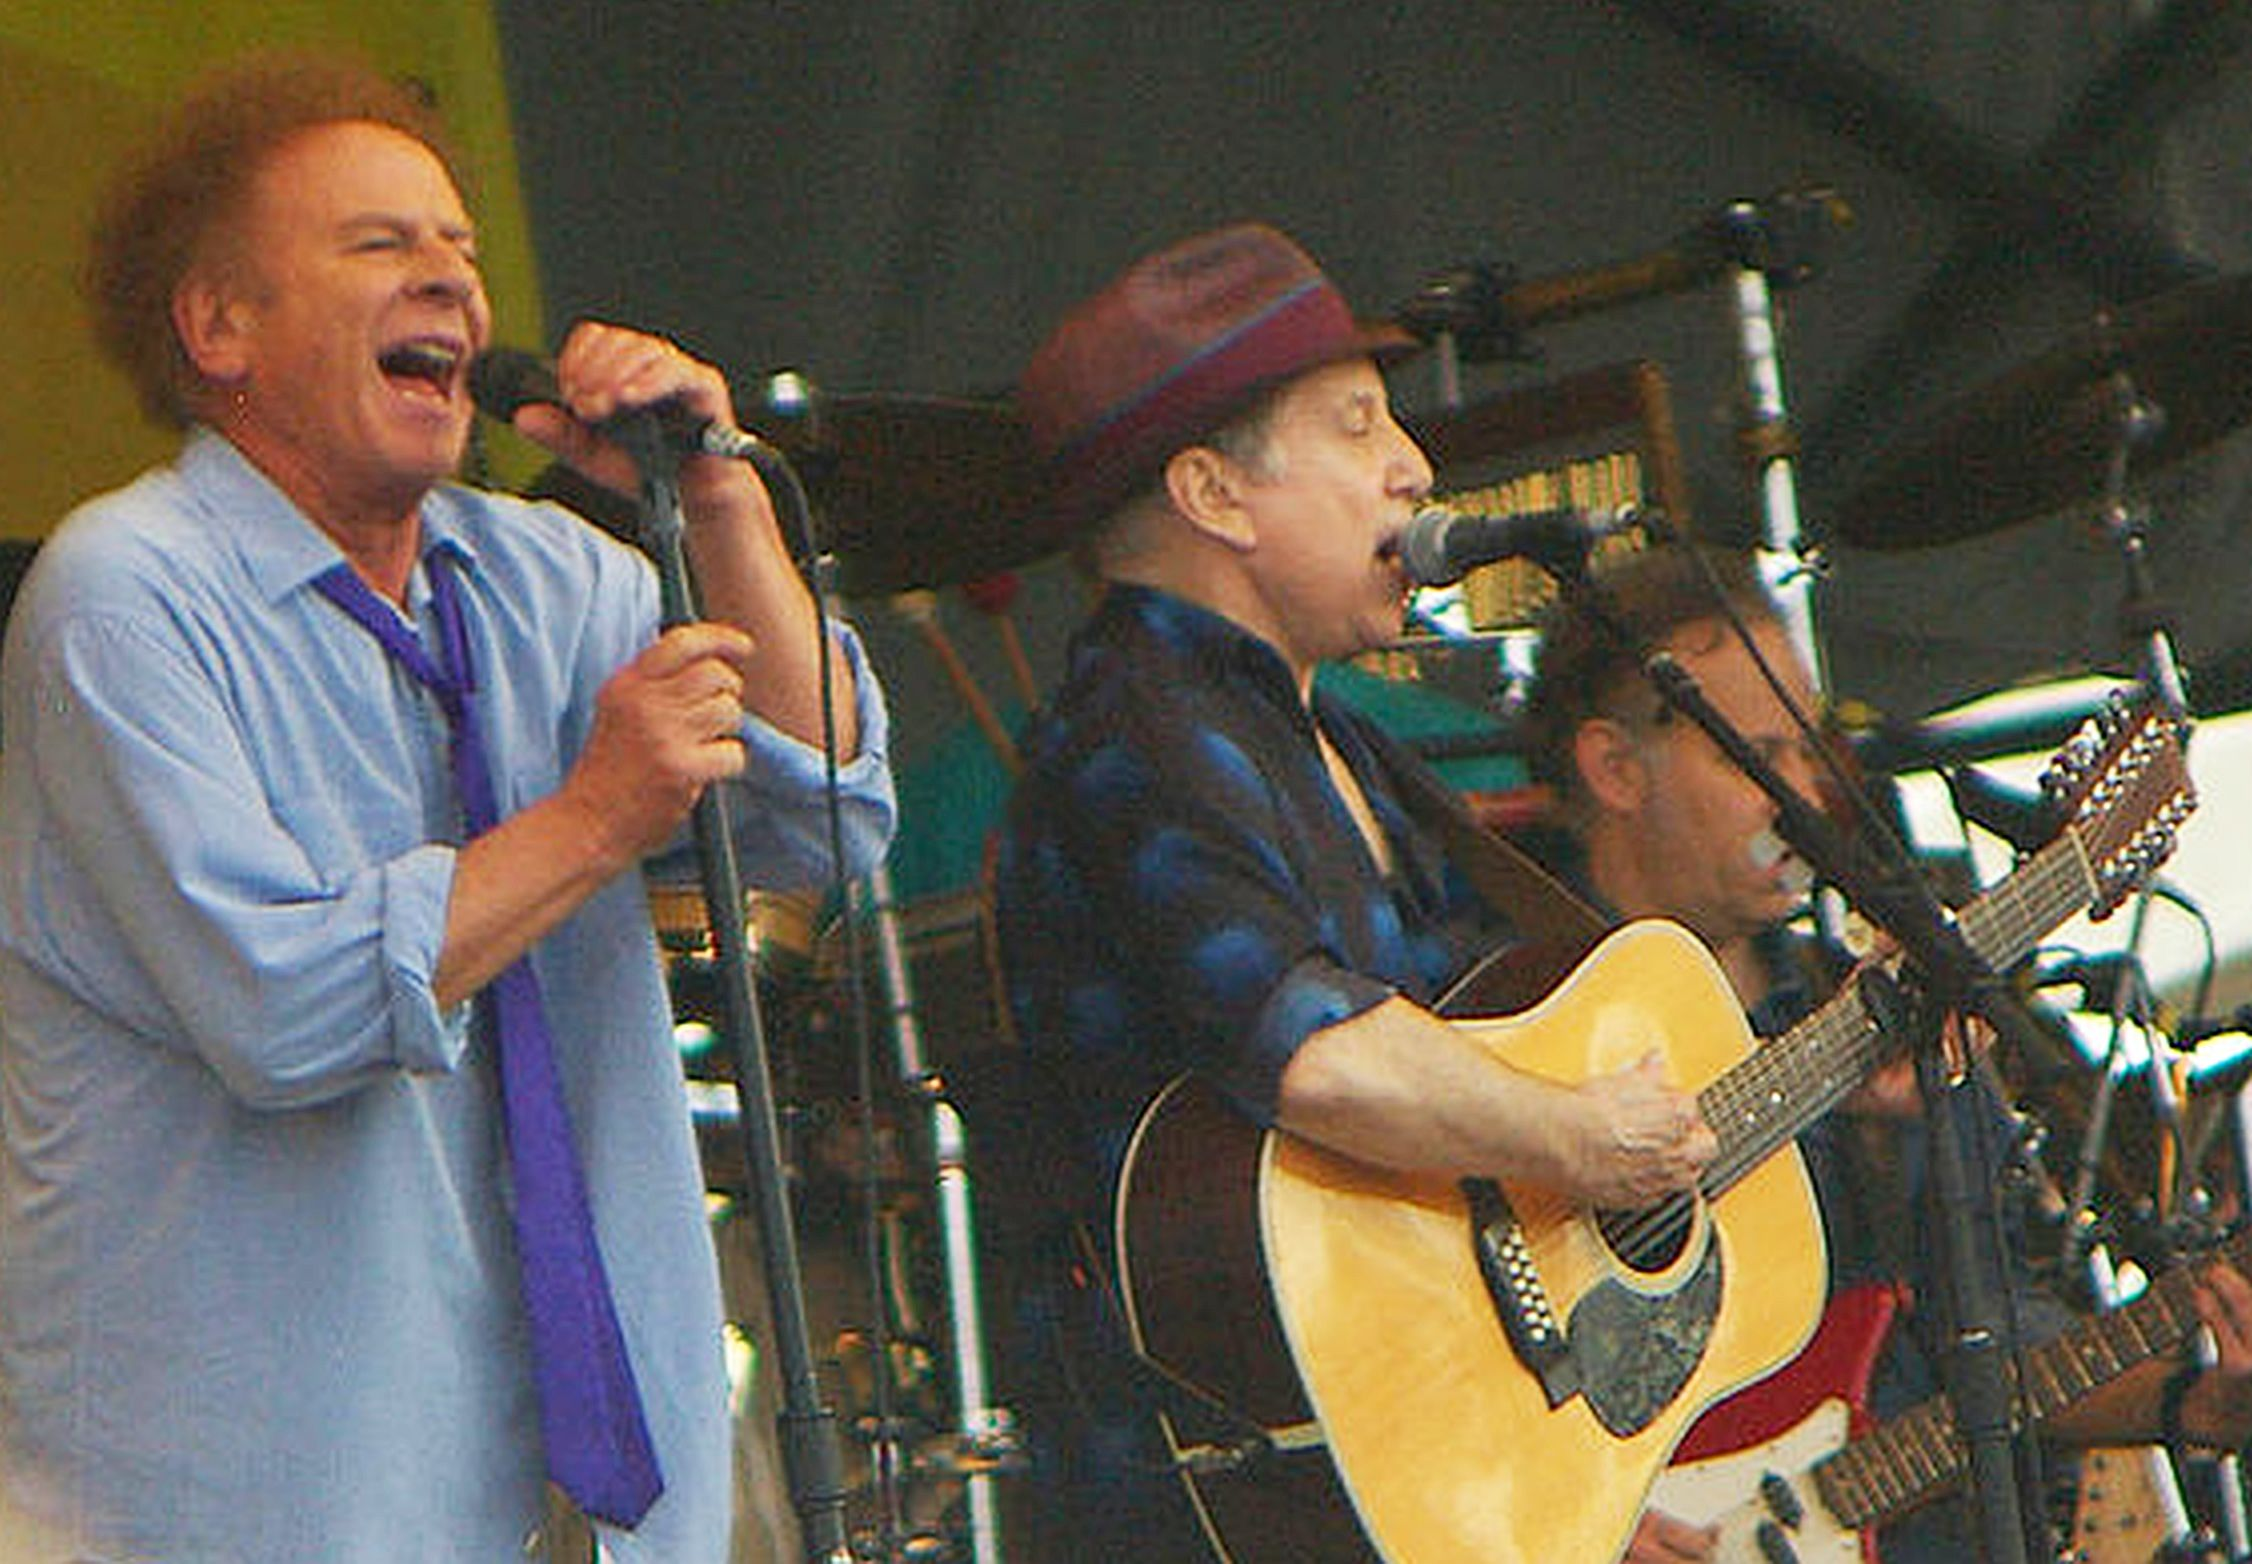 File:Simon & Garfunkel, Jazz Fest 2010 (cropped).jpg